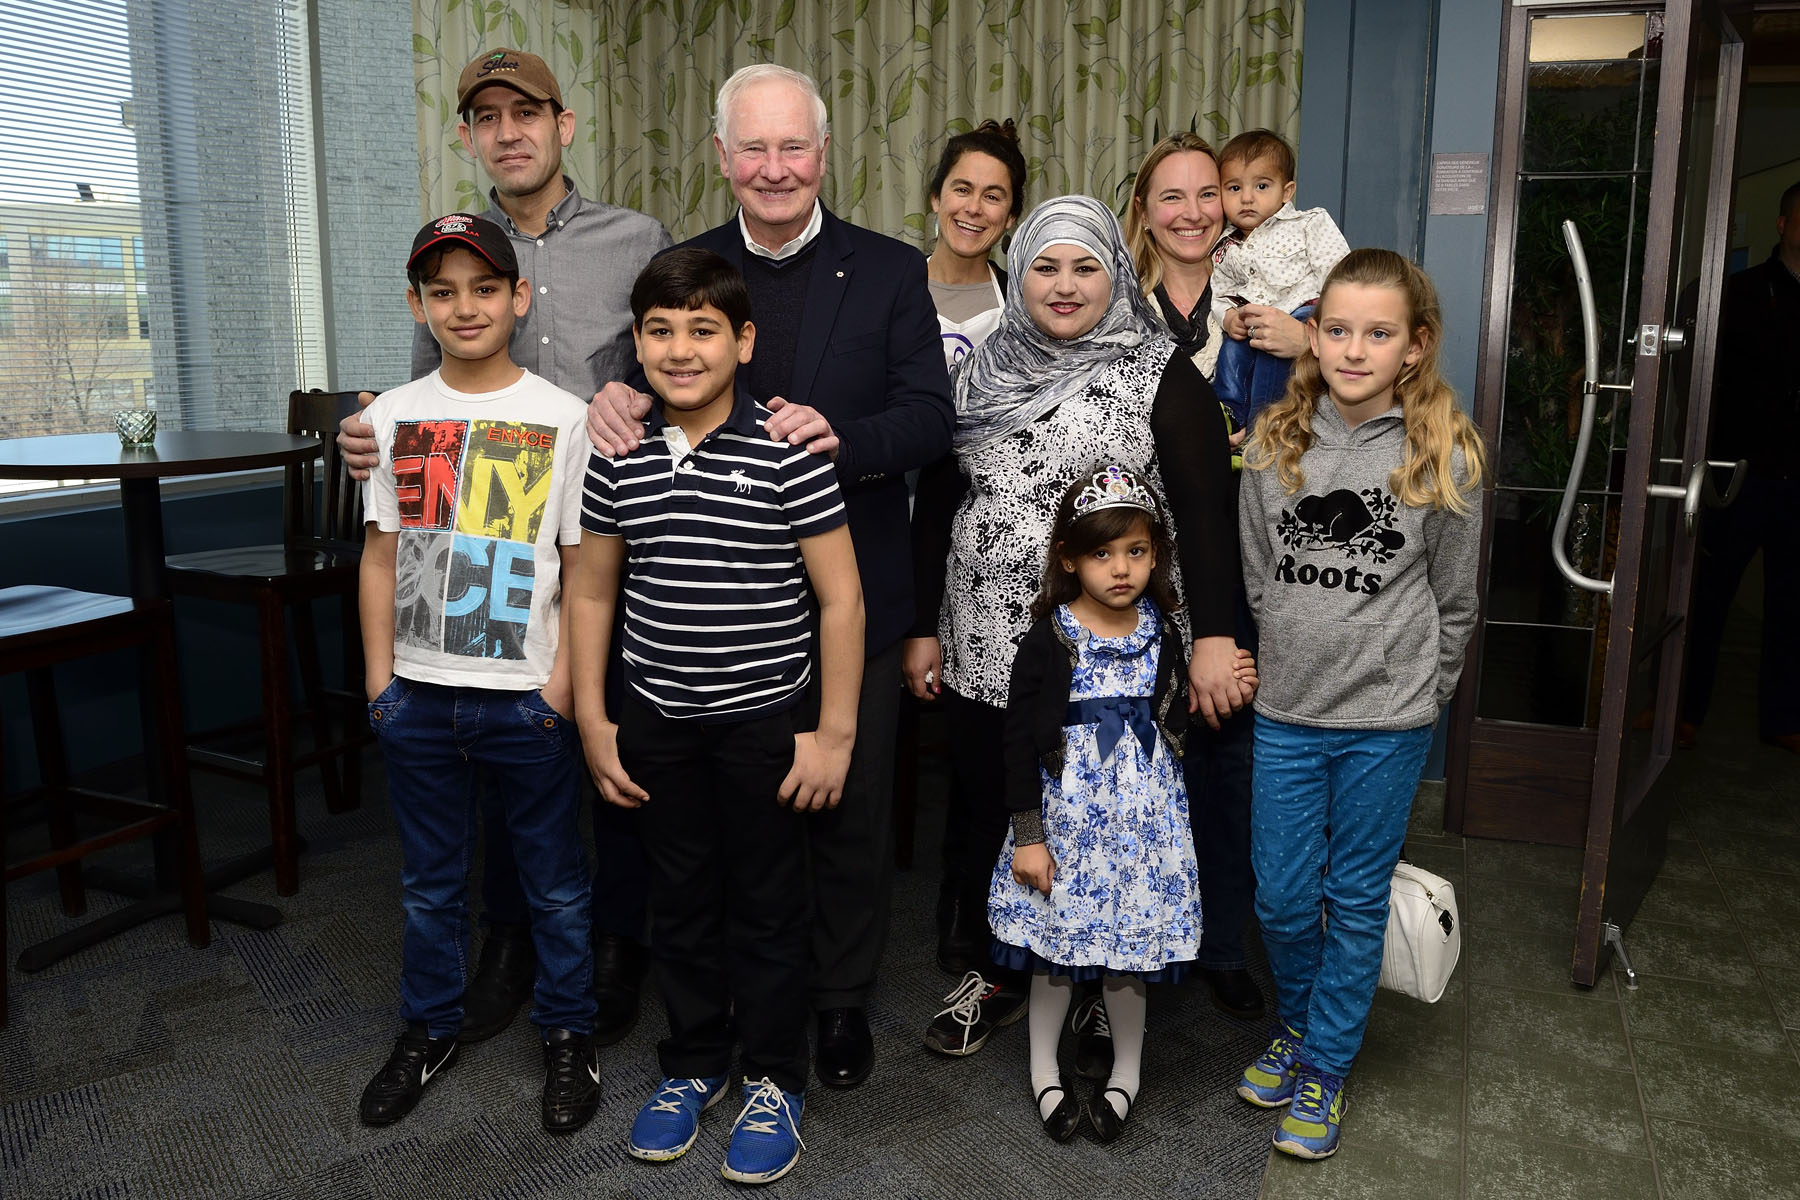 His Excellency was happy to welcome the Hajji family who now lives in Ottawa.